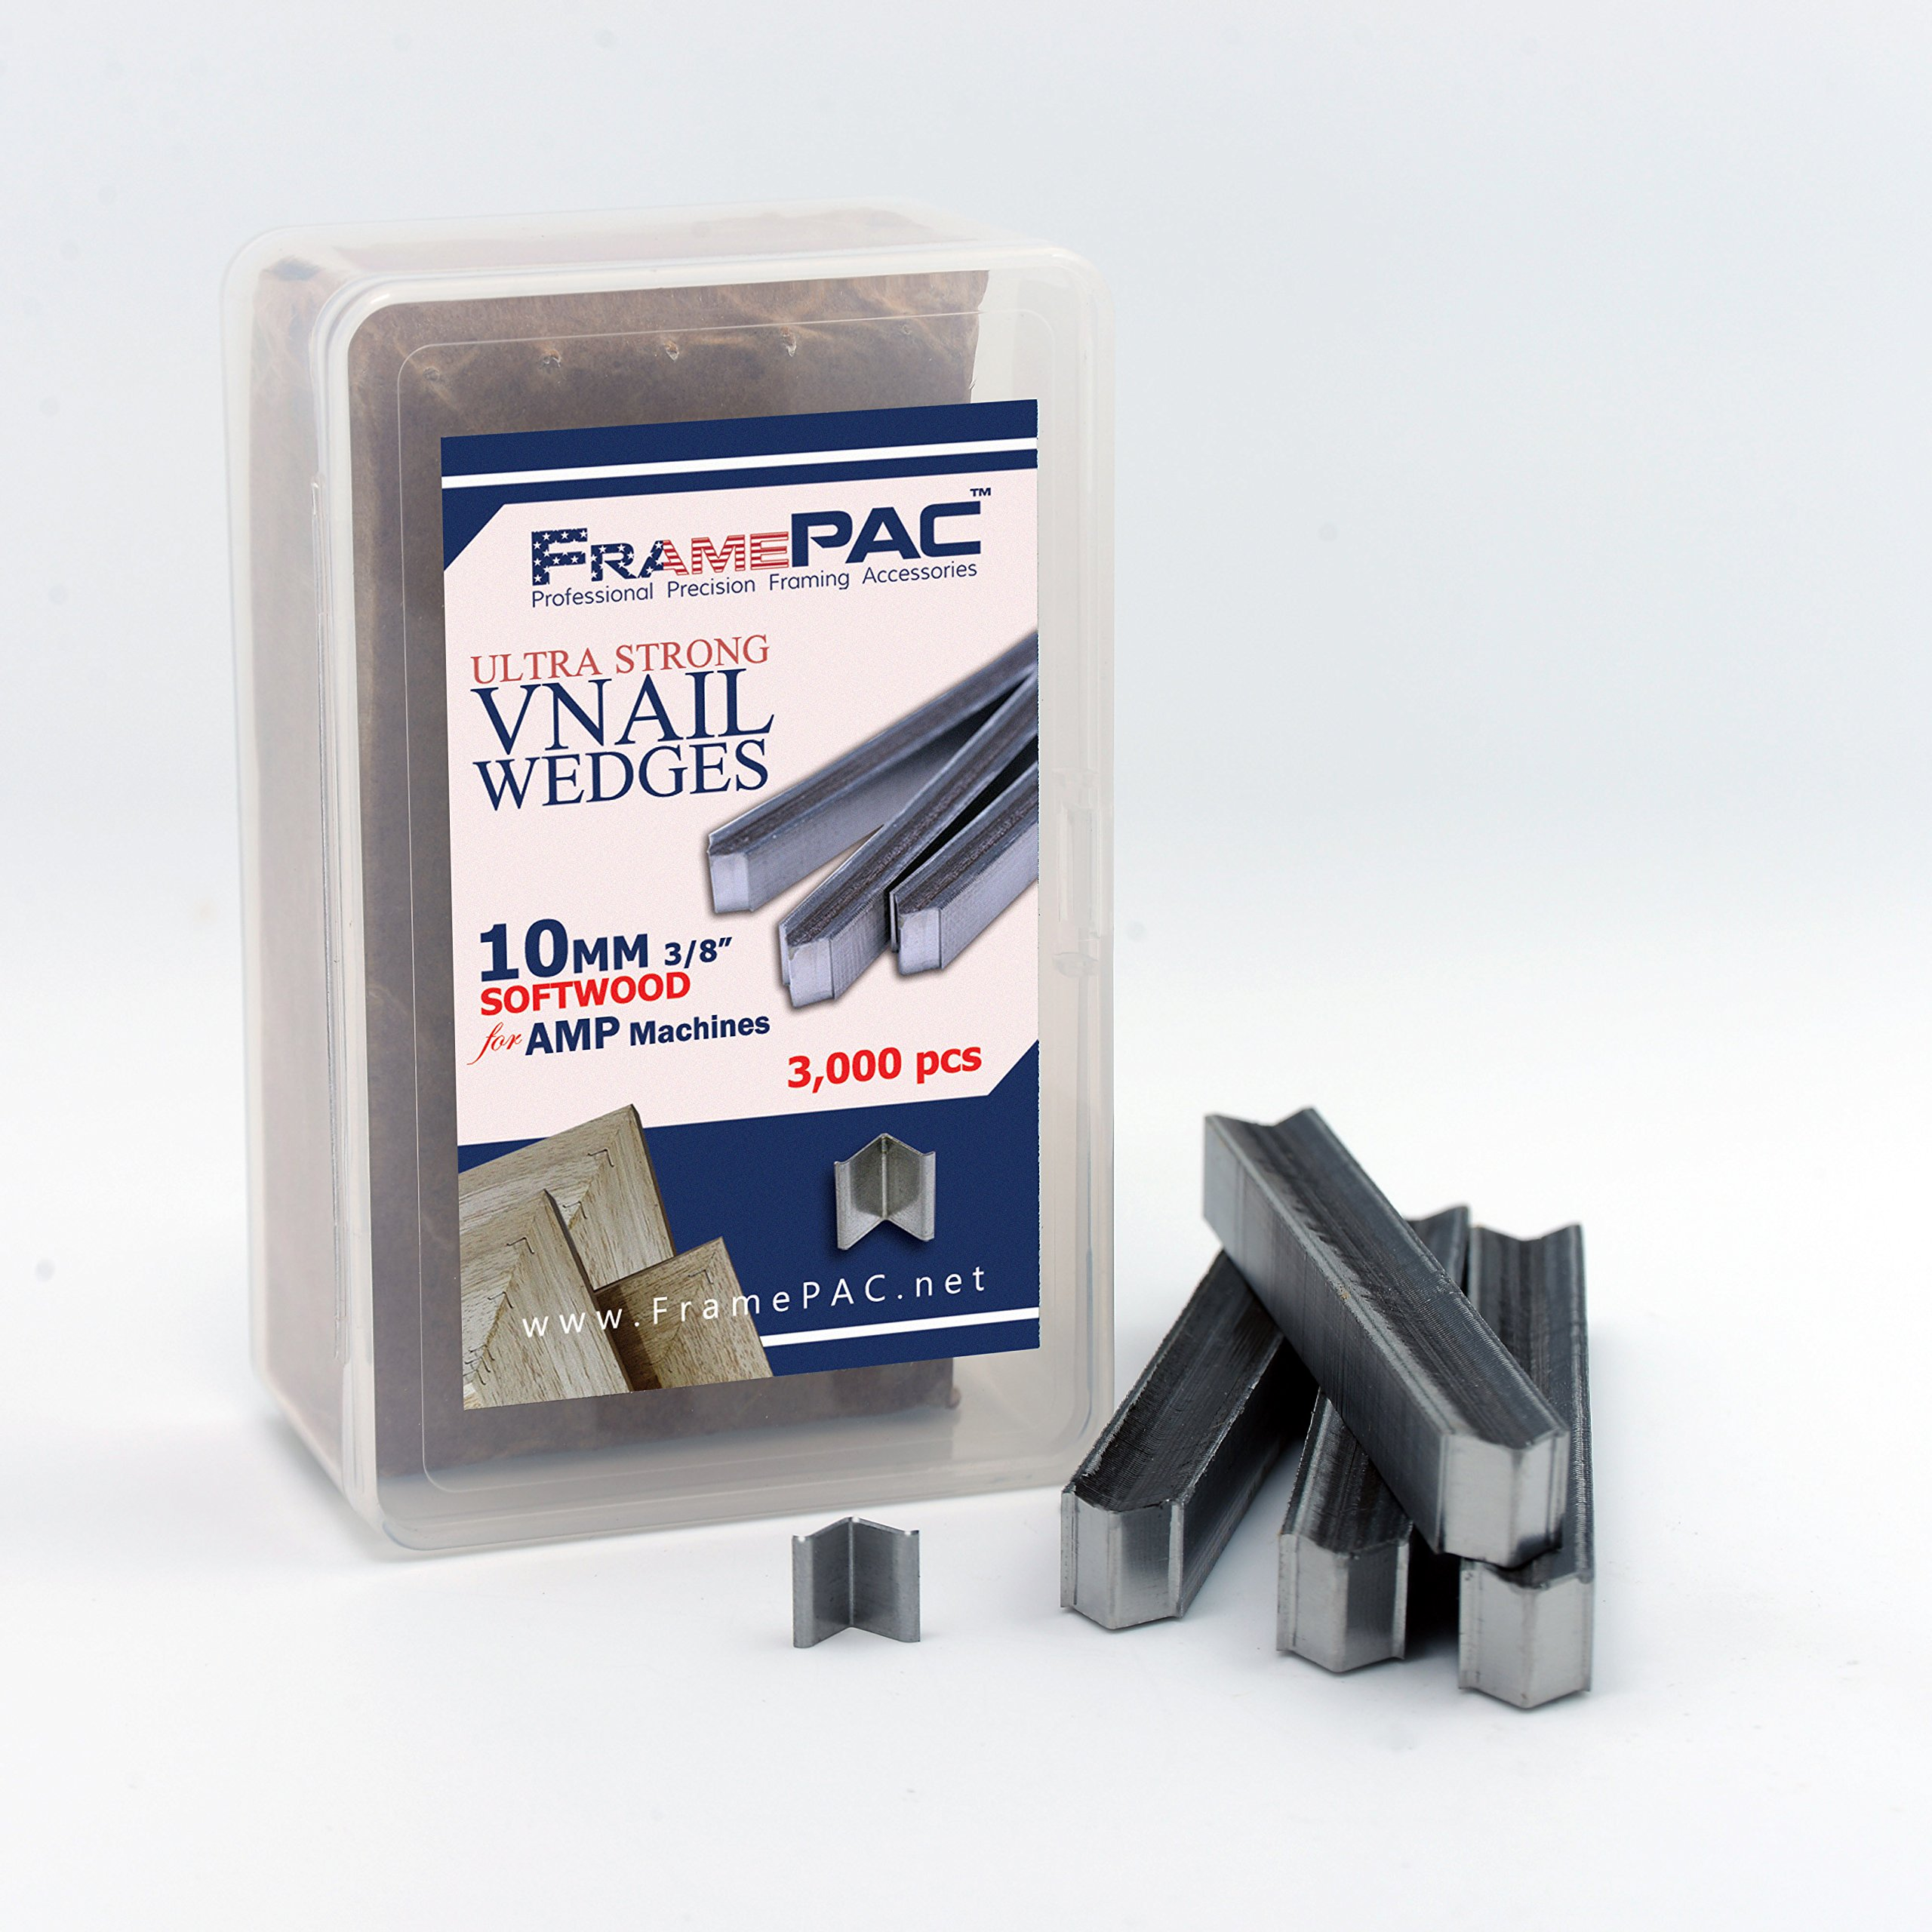 V Nails for Picture Framing - Ultra Strong - 10mm (3/8 Inch) Vnail Wedges for Joining Picture Frame Corners - Softwood Frames - AMP [3000 V Nail Pack, Stacked]